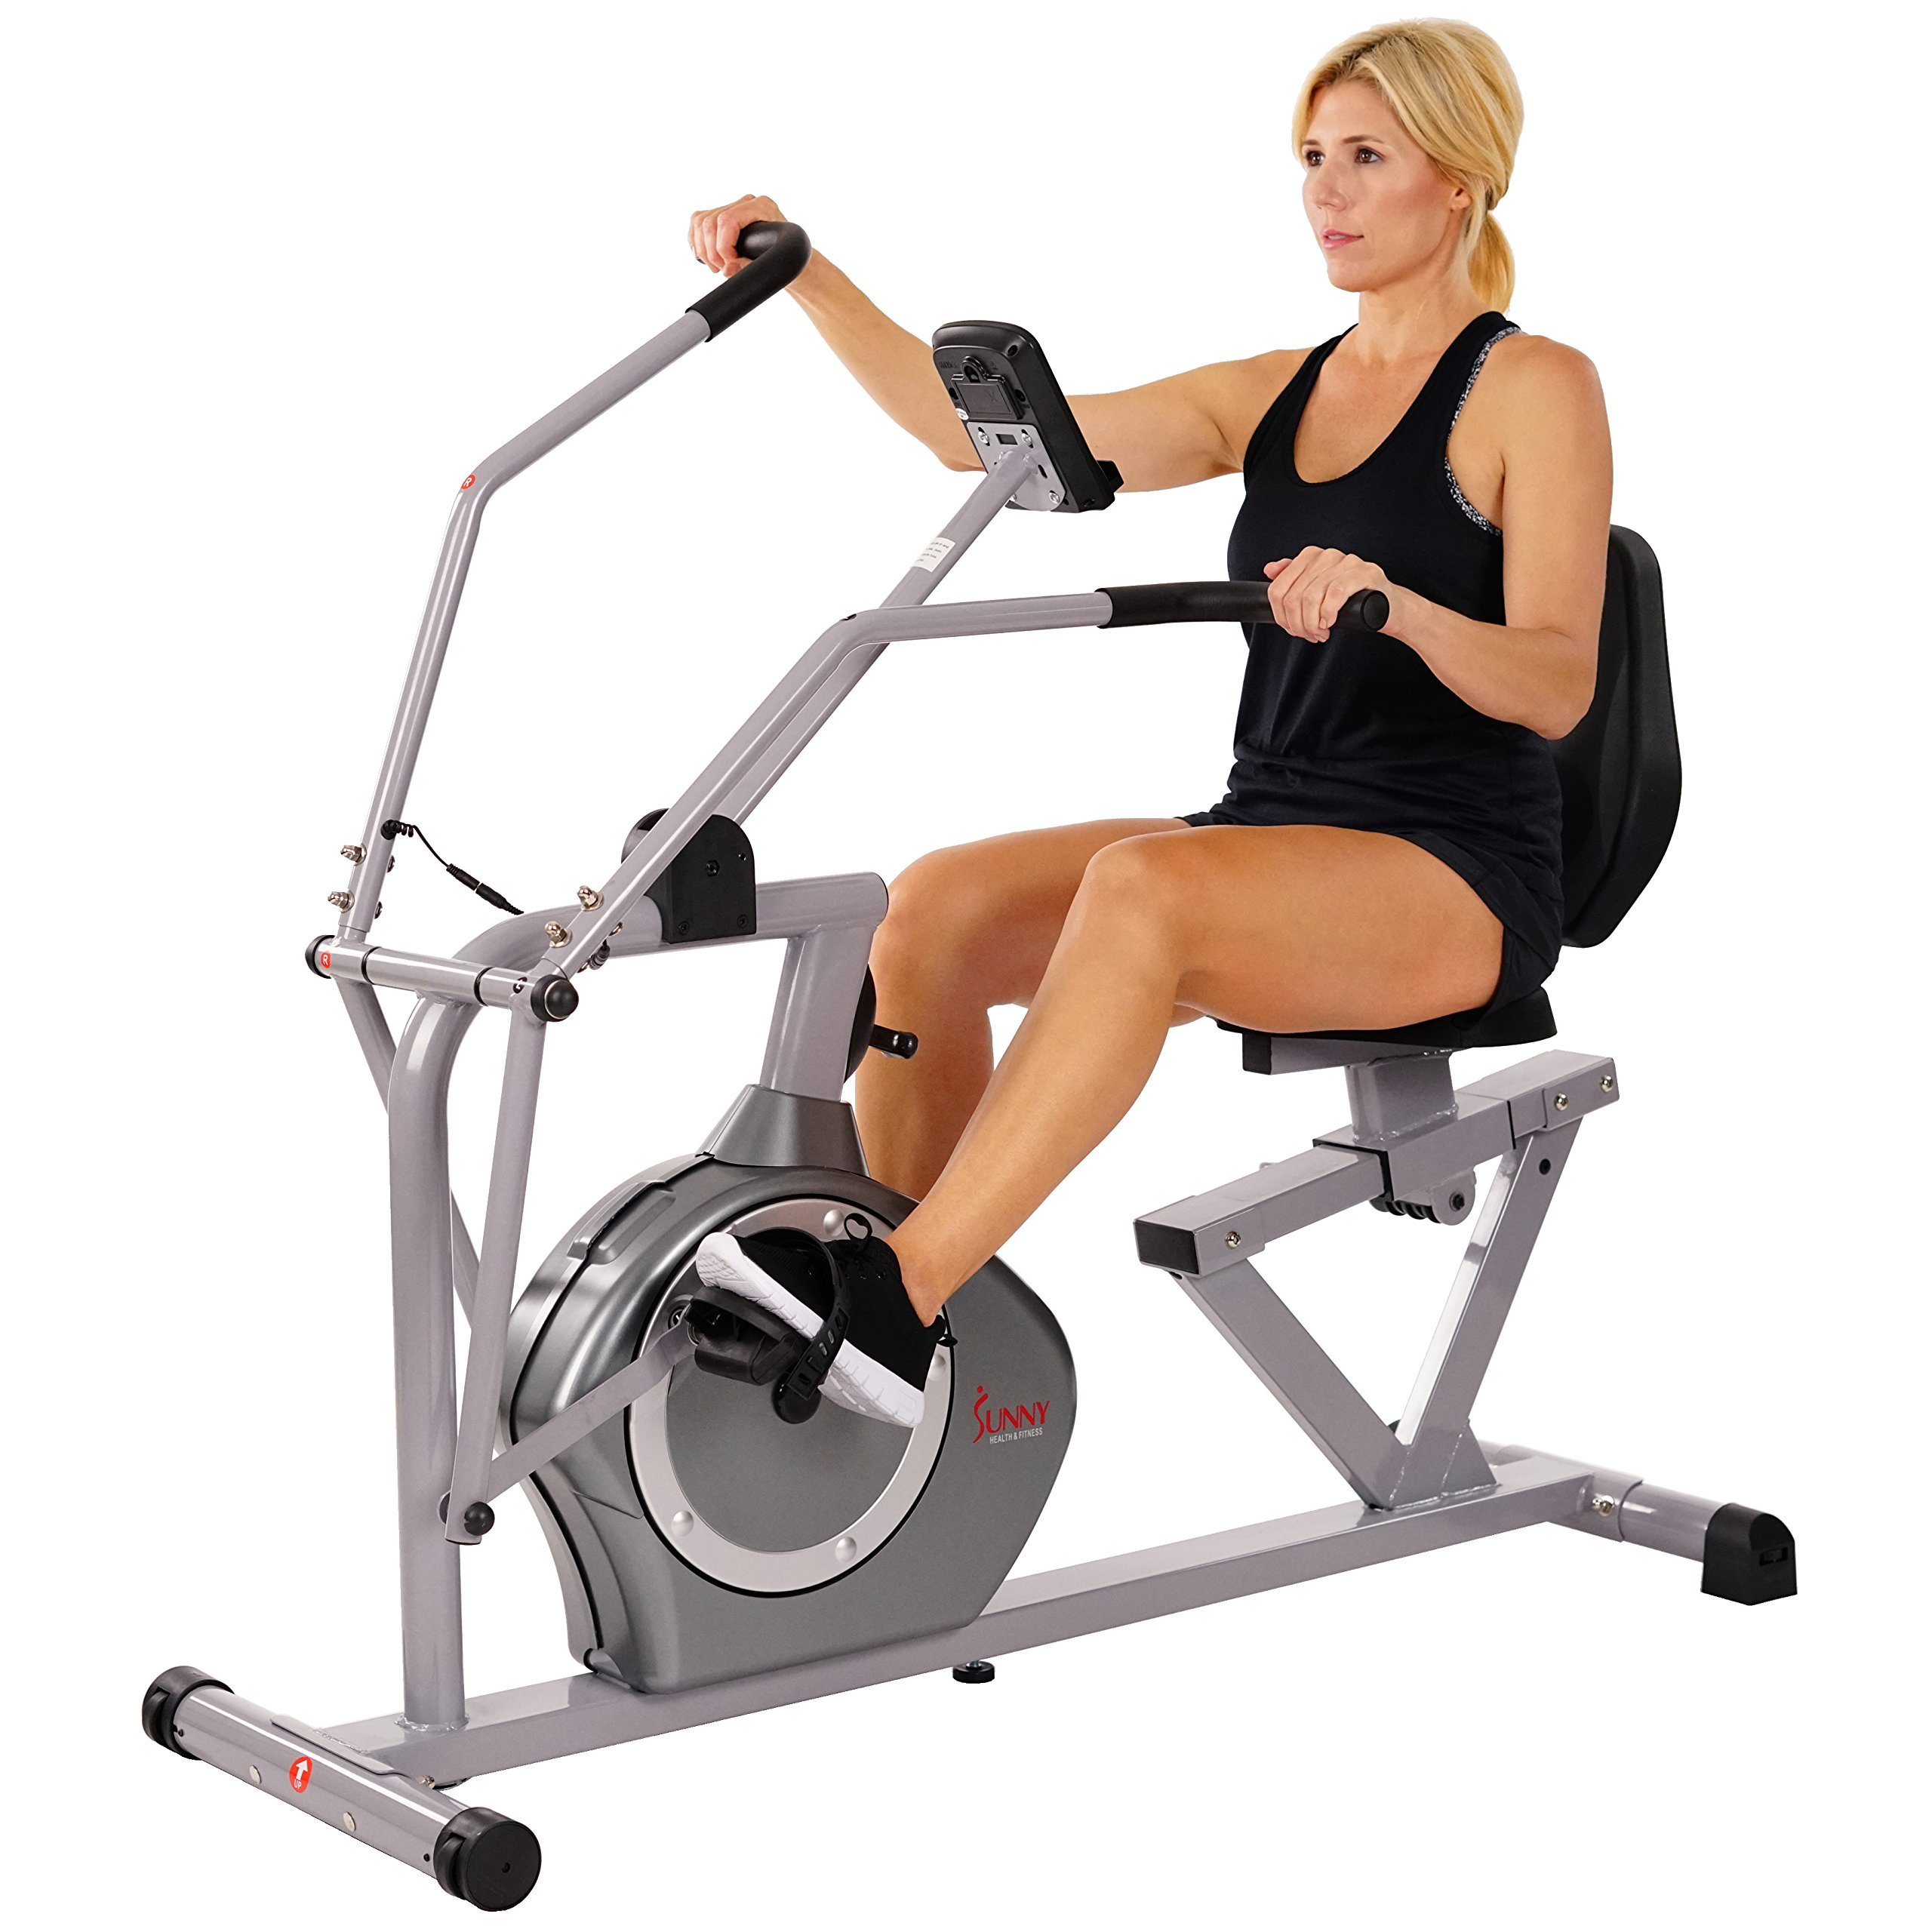 Sunny Health & Fitness Magnetic Recumbent Bike Exercise Bike, 350lb High Weight Capacity, Cross Training, Arm Exercisers, Monitor, Pulse Rate Monitoring - SF-RB4708 by Sunny Health & Fitness (Image #2)